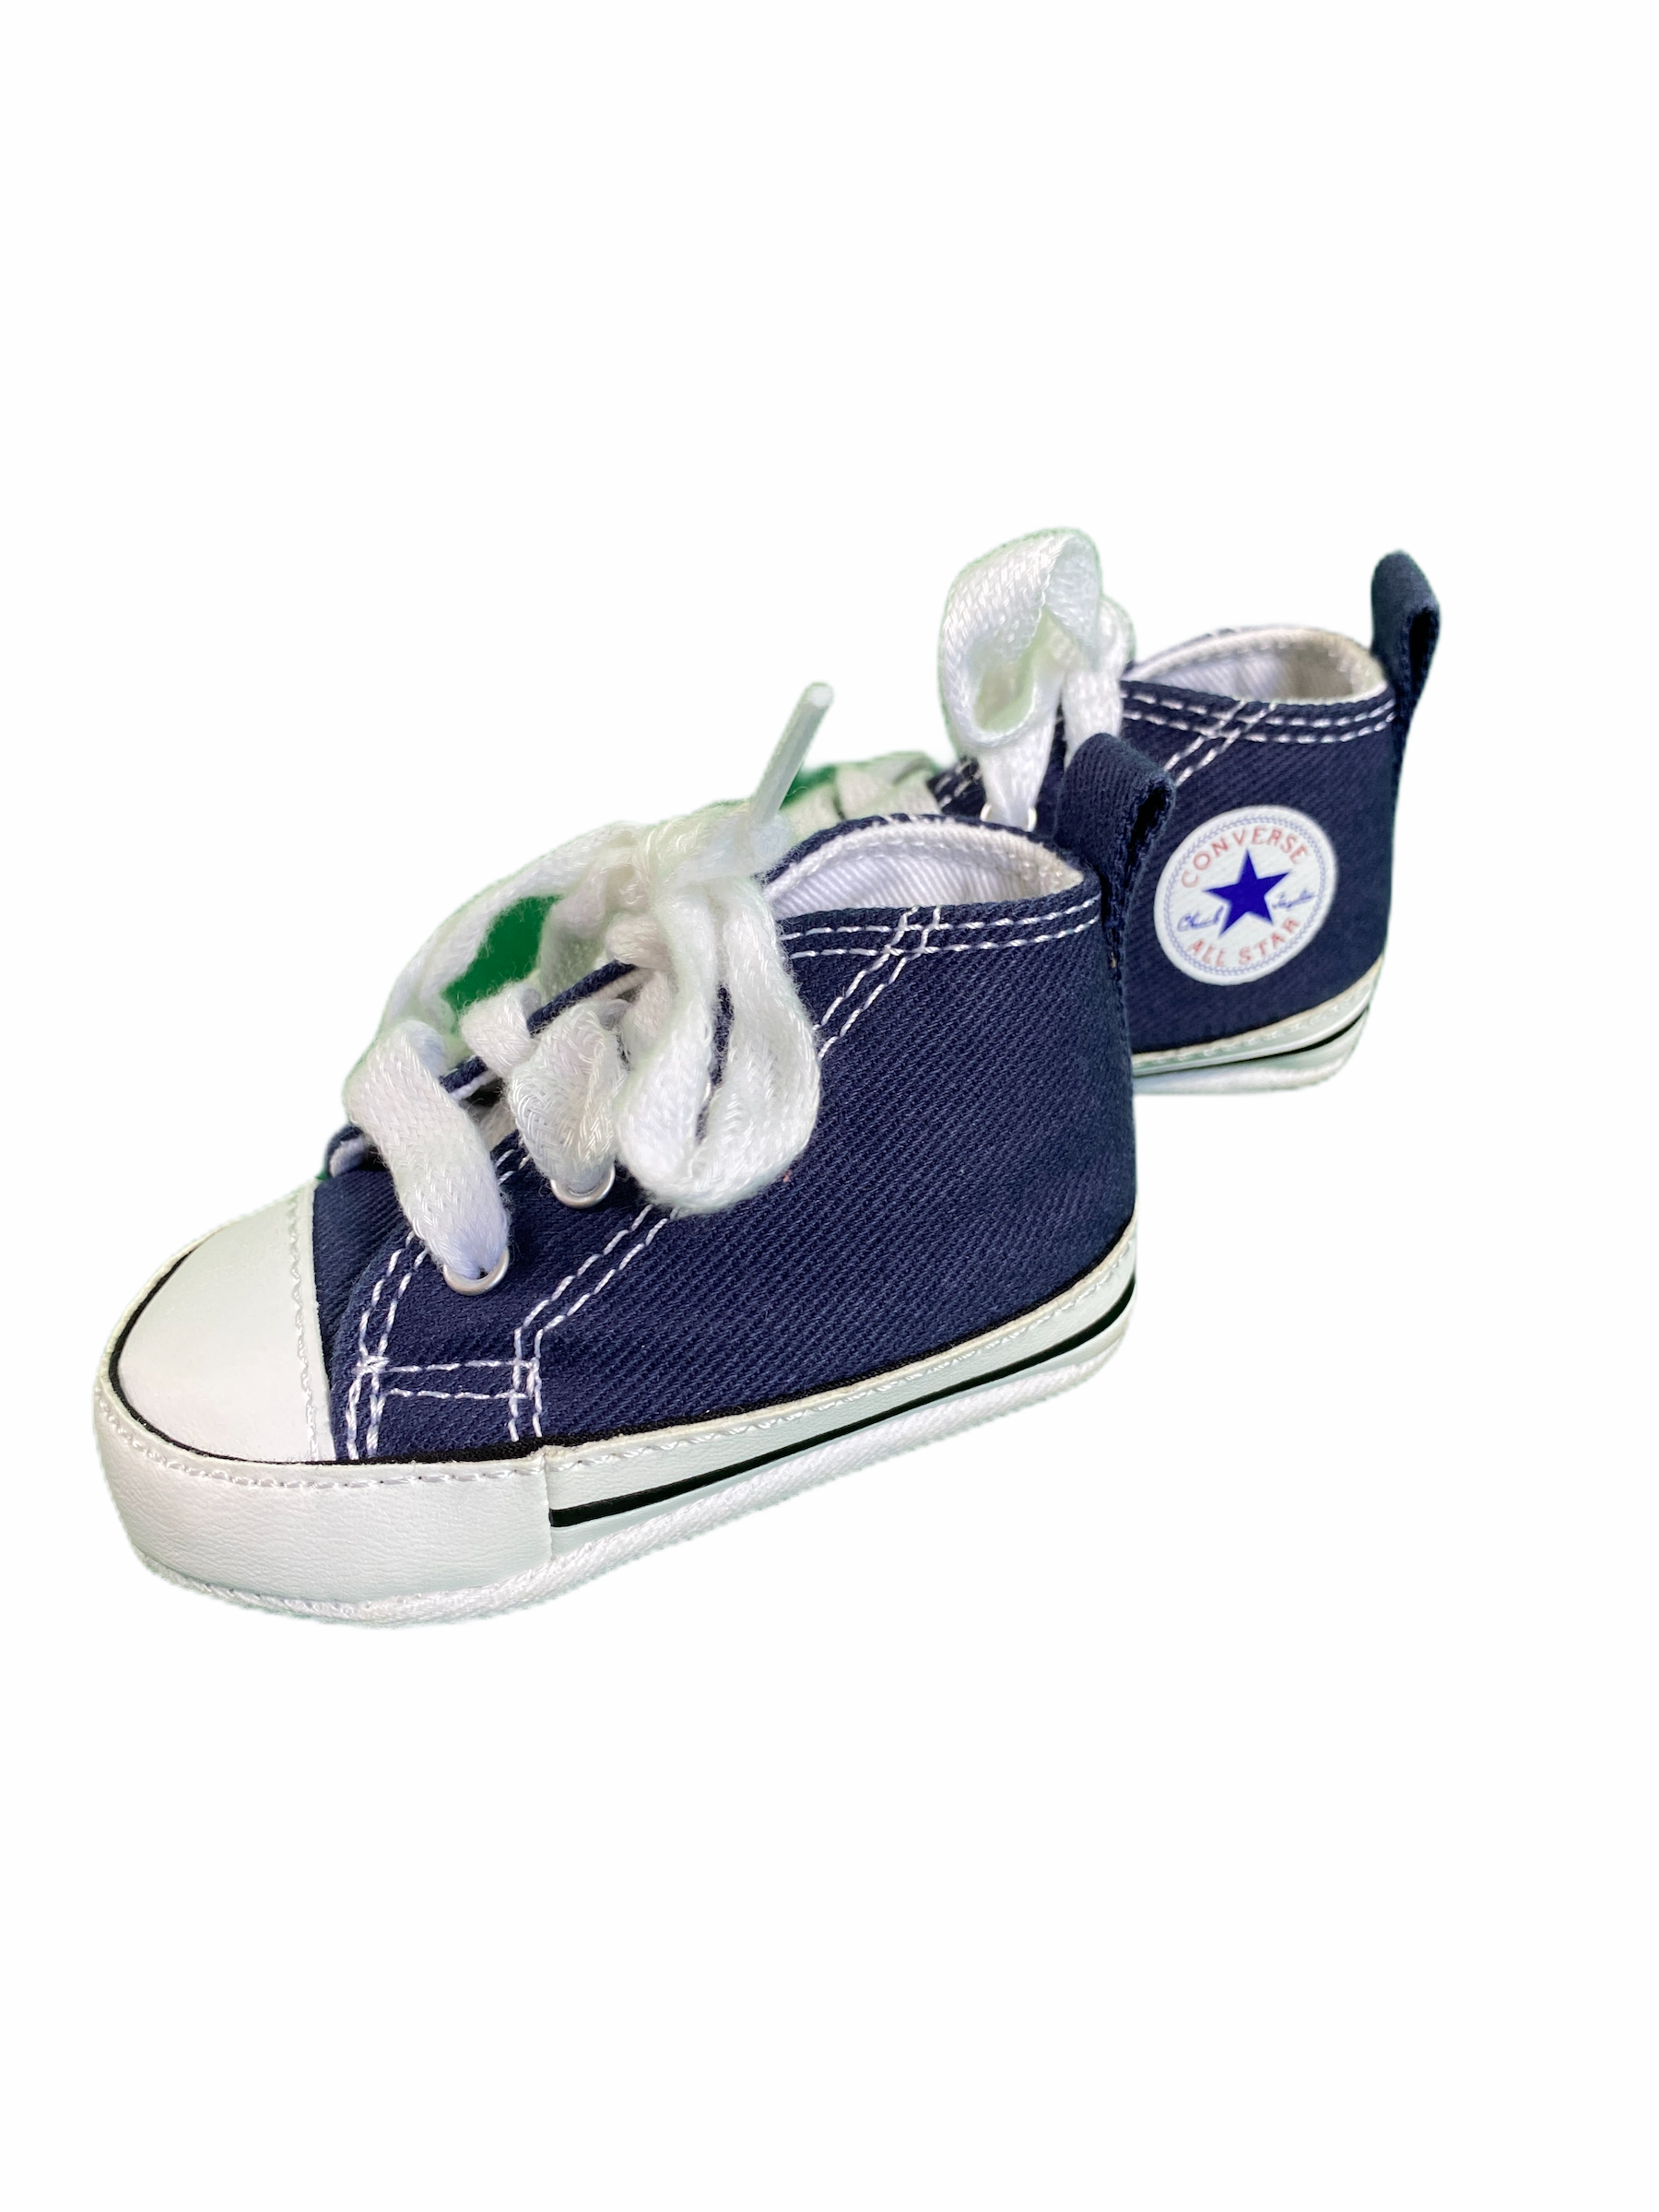 Converse Navy High Tops Soft Shoe (Size 1)